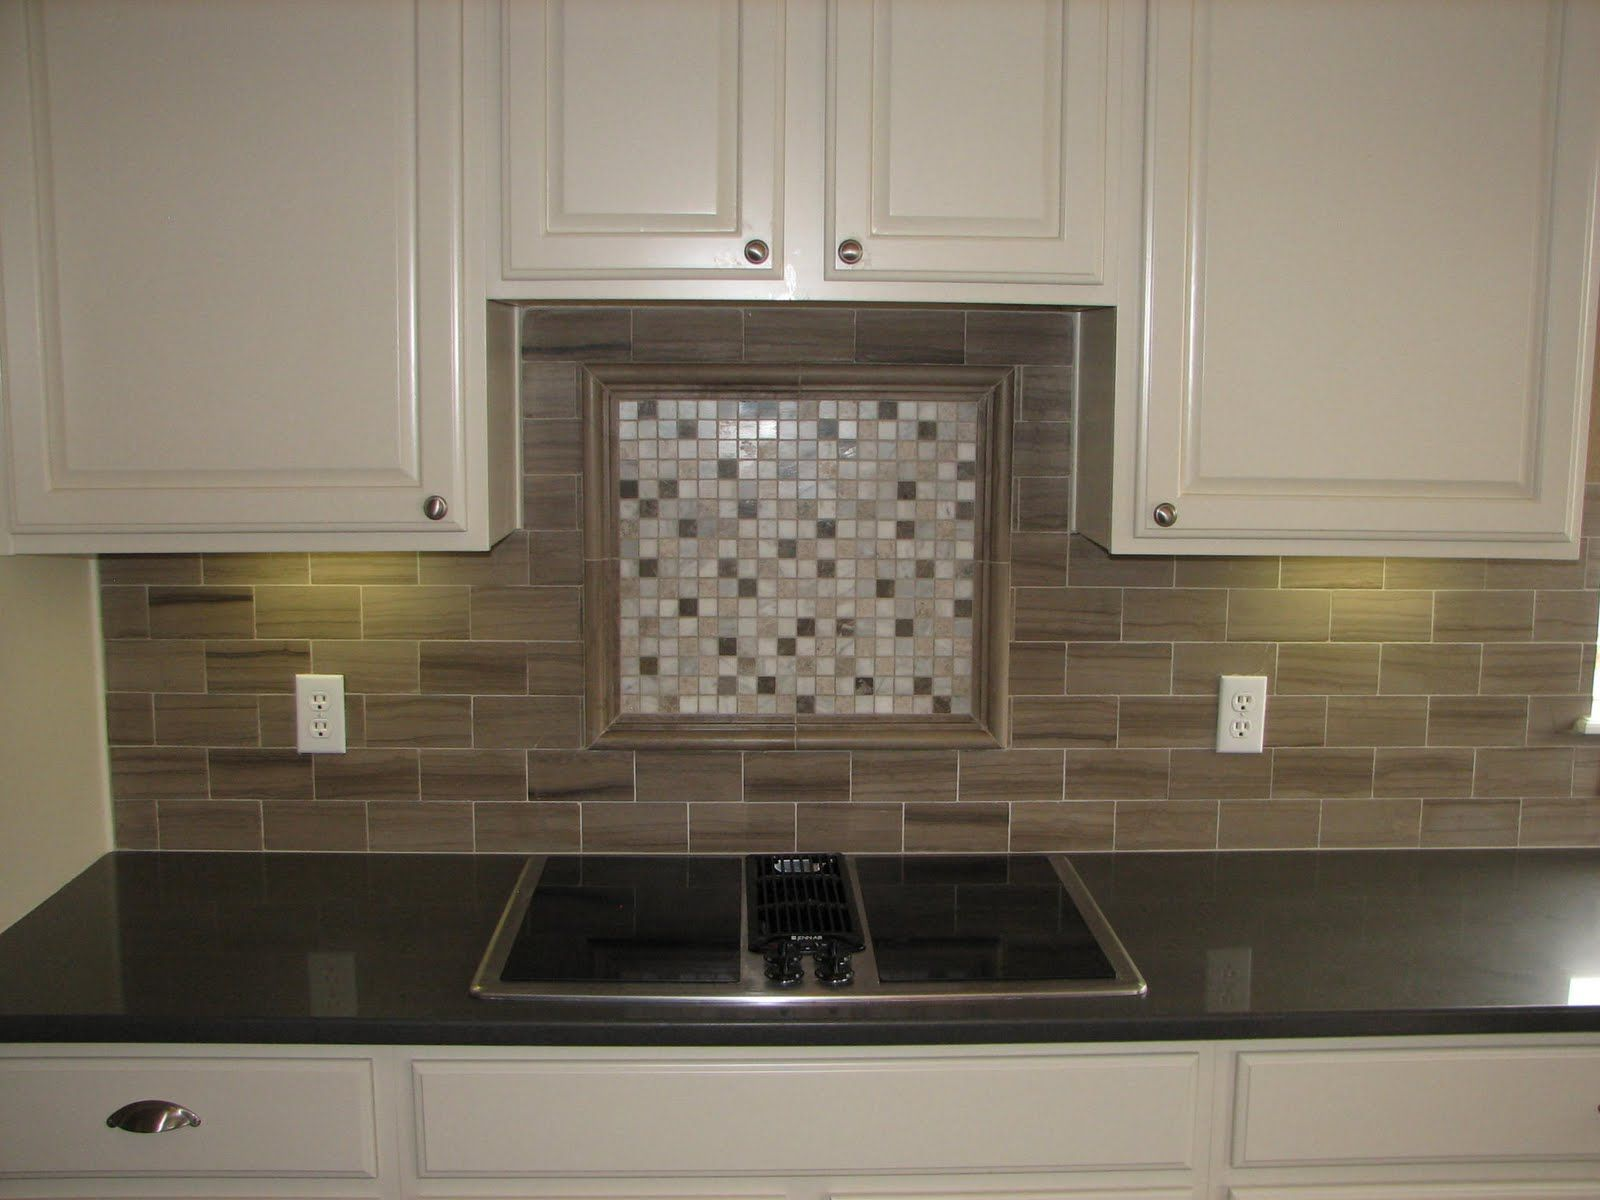 Tile backsplash with black cuntertop ideas tile design backsplash photos backsplash design Tile backsplash kitchen ideas